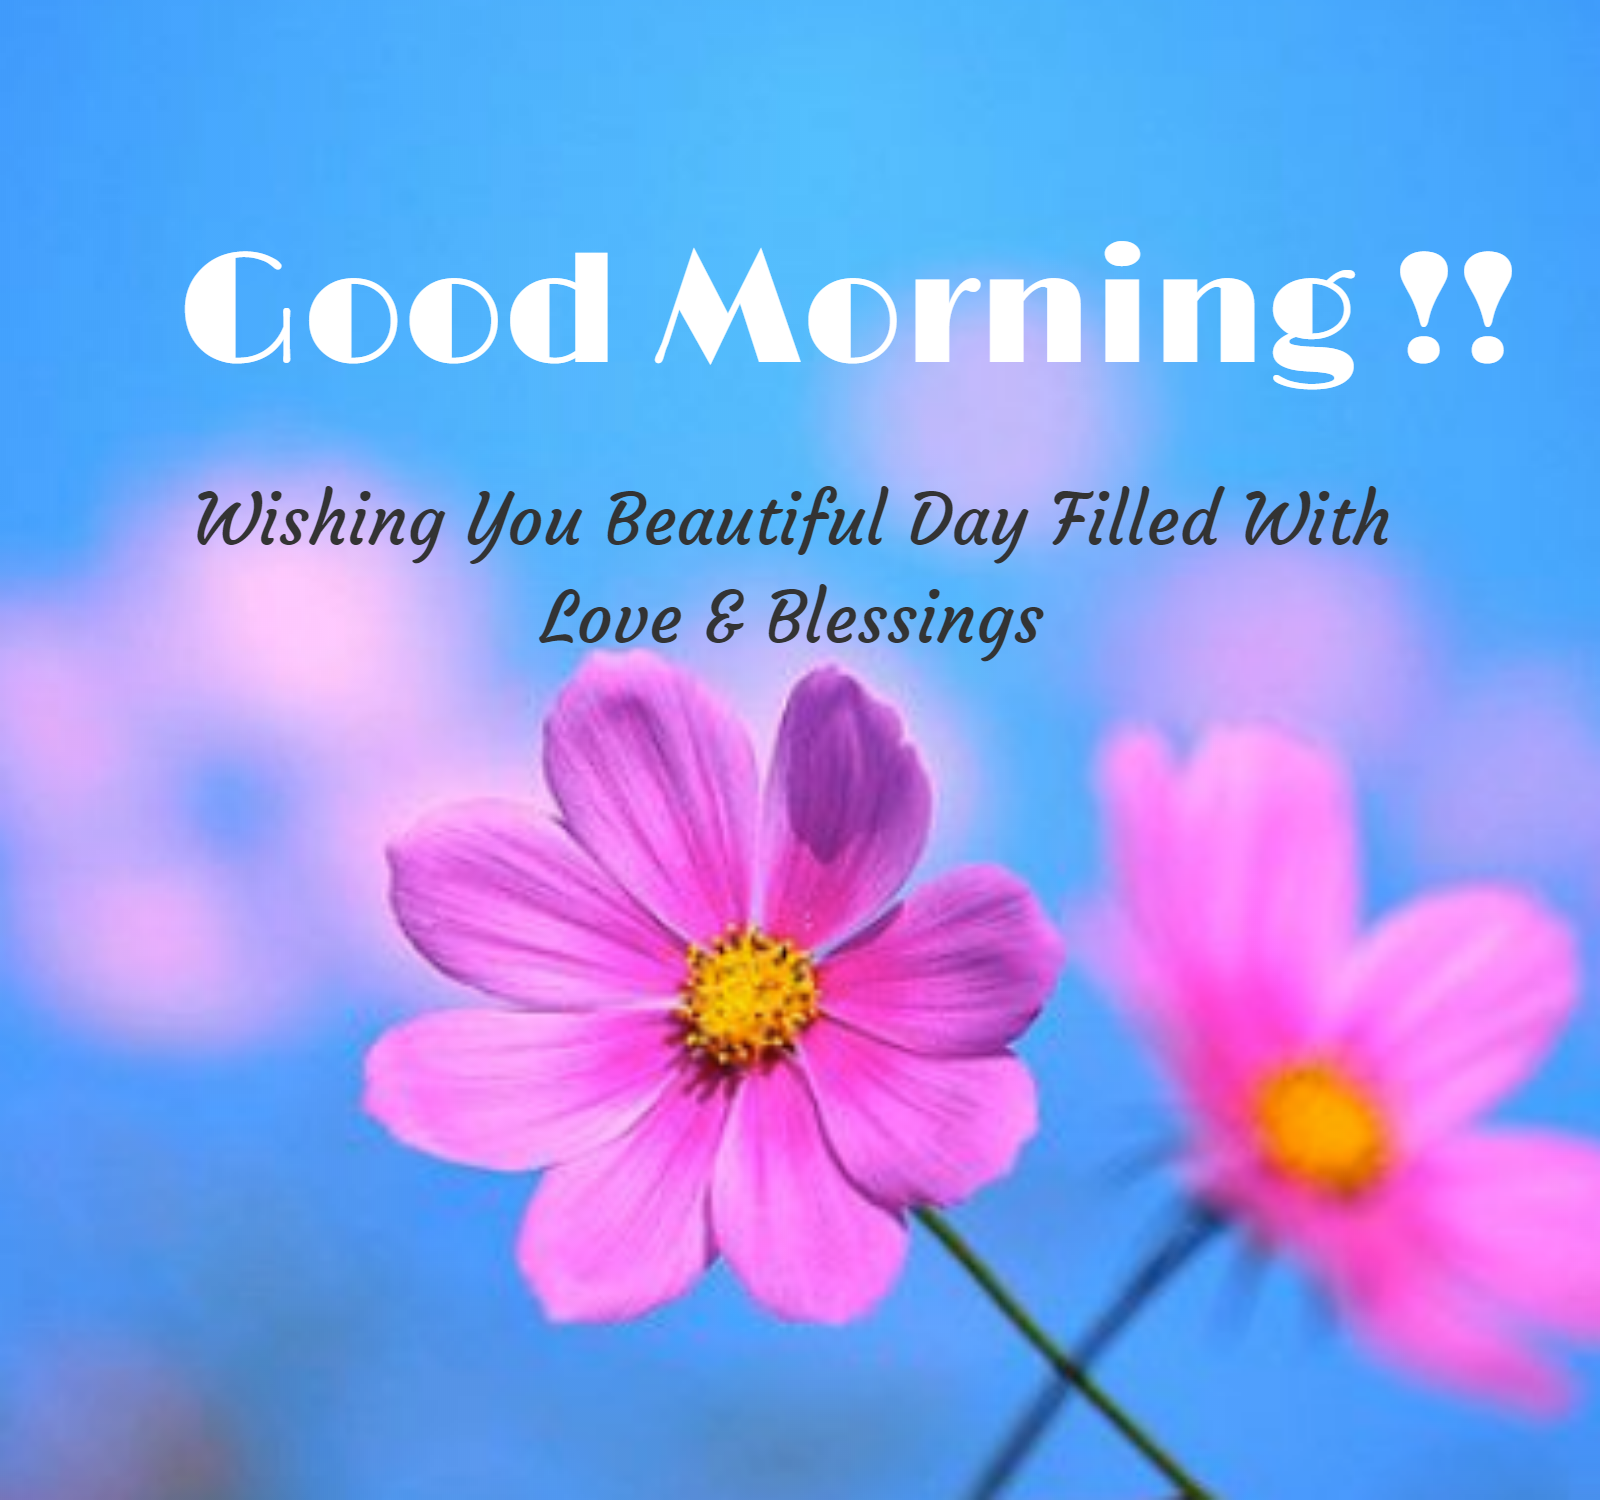 Good Morning Flowers Good Morning Messages Good Morning Images Morning Images